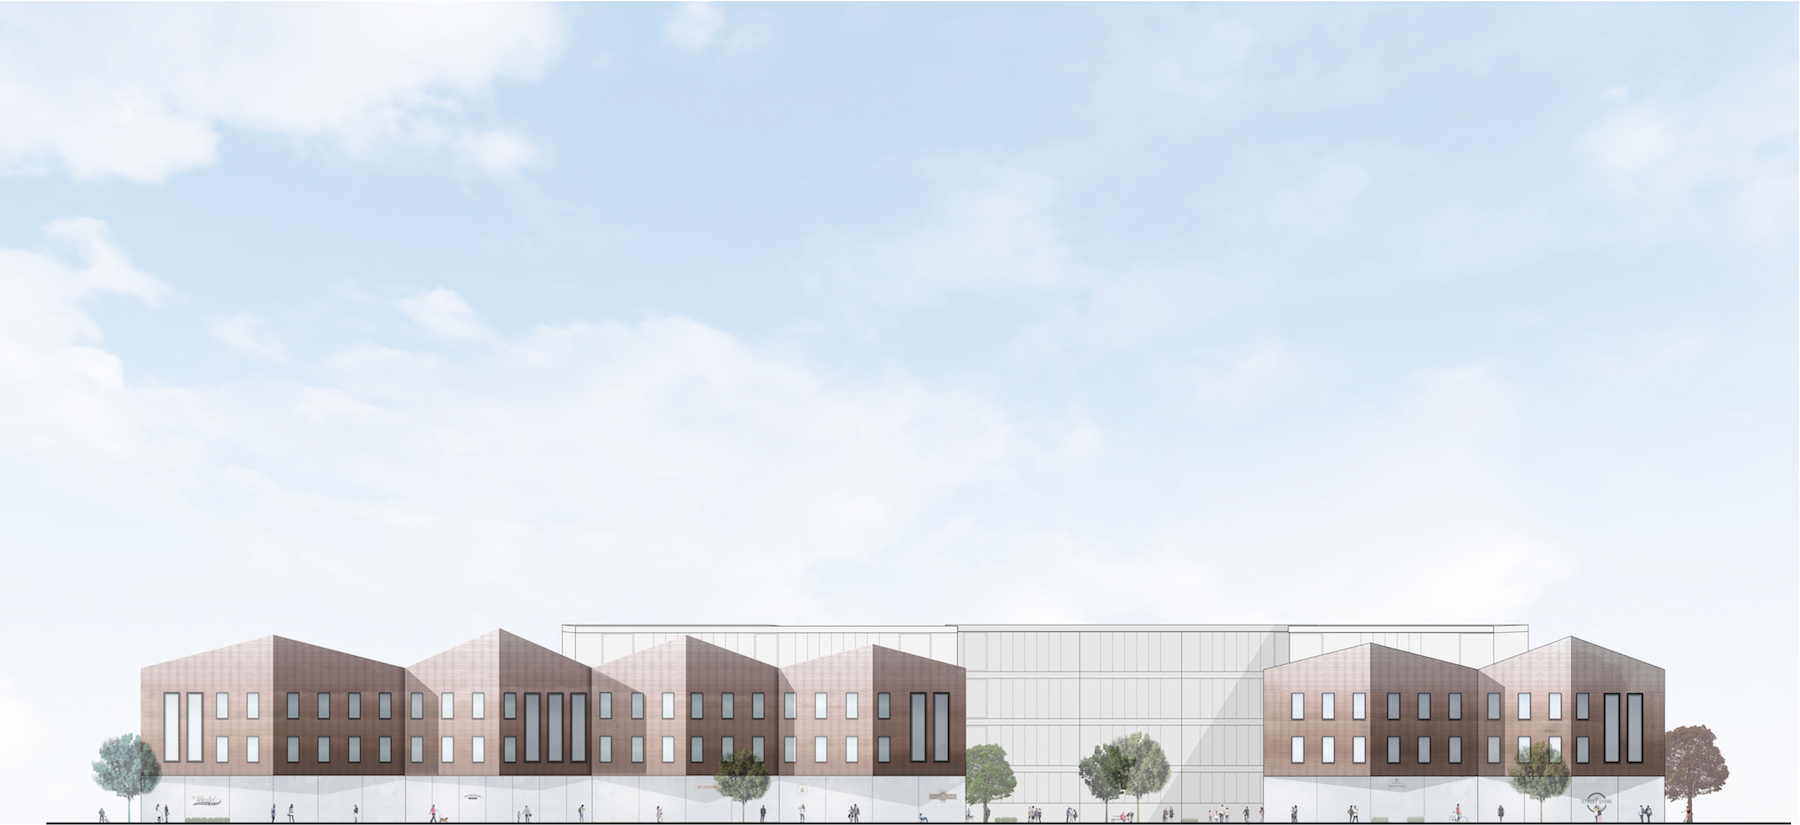 Elevation drawing of a proposed student housing scheme copy